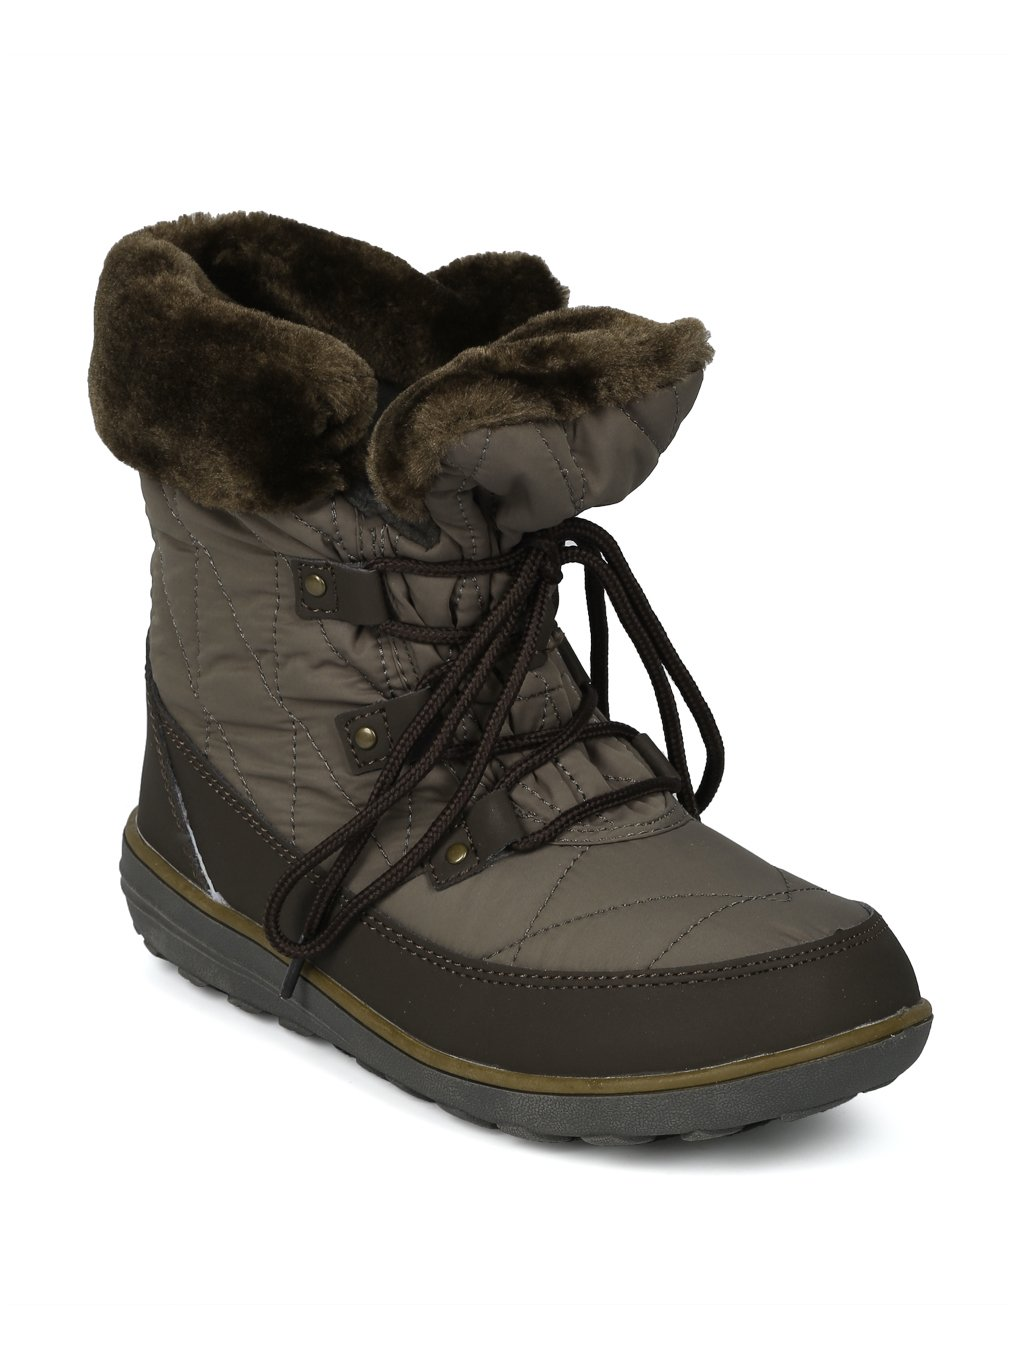 Alrisco Faux Fur Trim Lace up Outdoor Winter Boot HG06 B078MPQ7LM 8.5 M US|Olive Mix Media